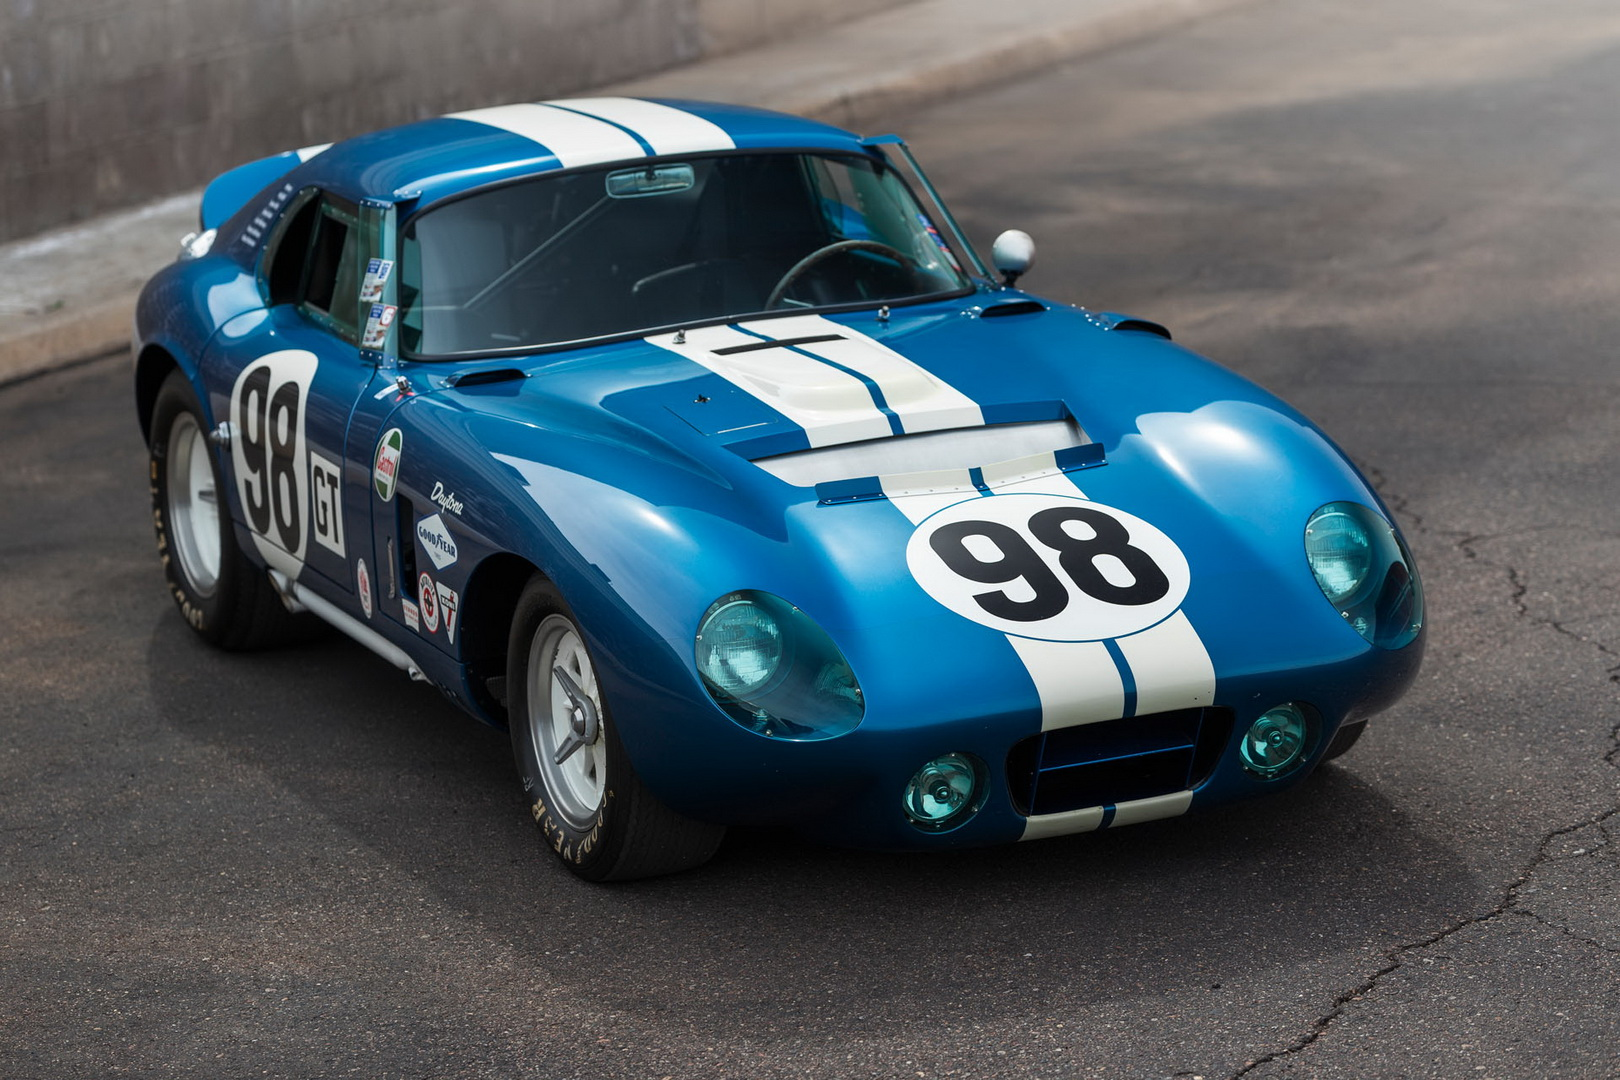 1965 Shelby Cobra Daytona Coupe CSX 2469